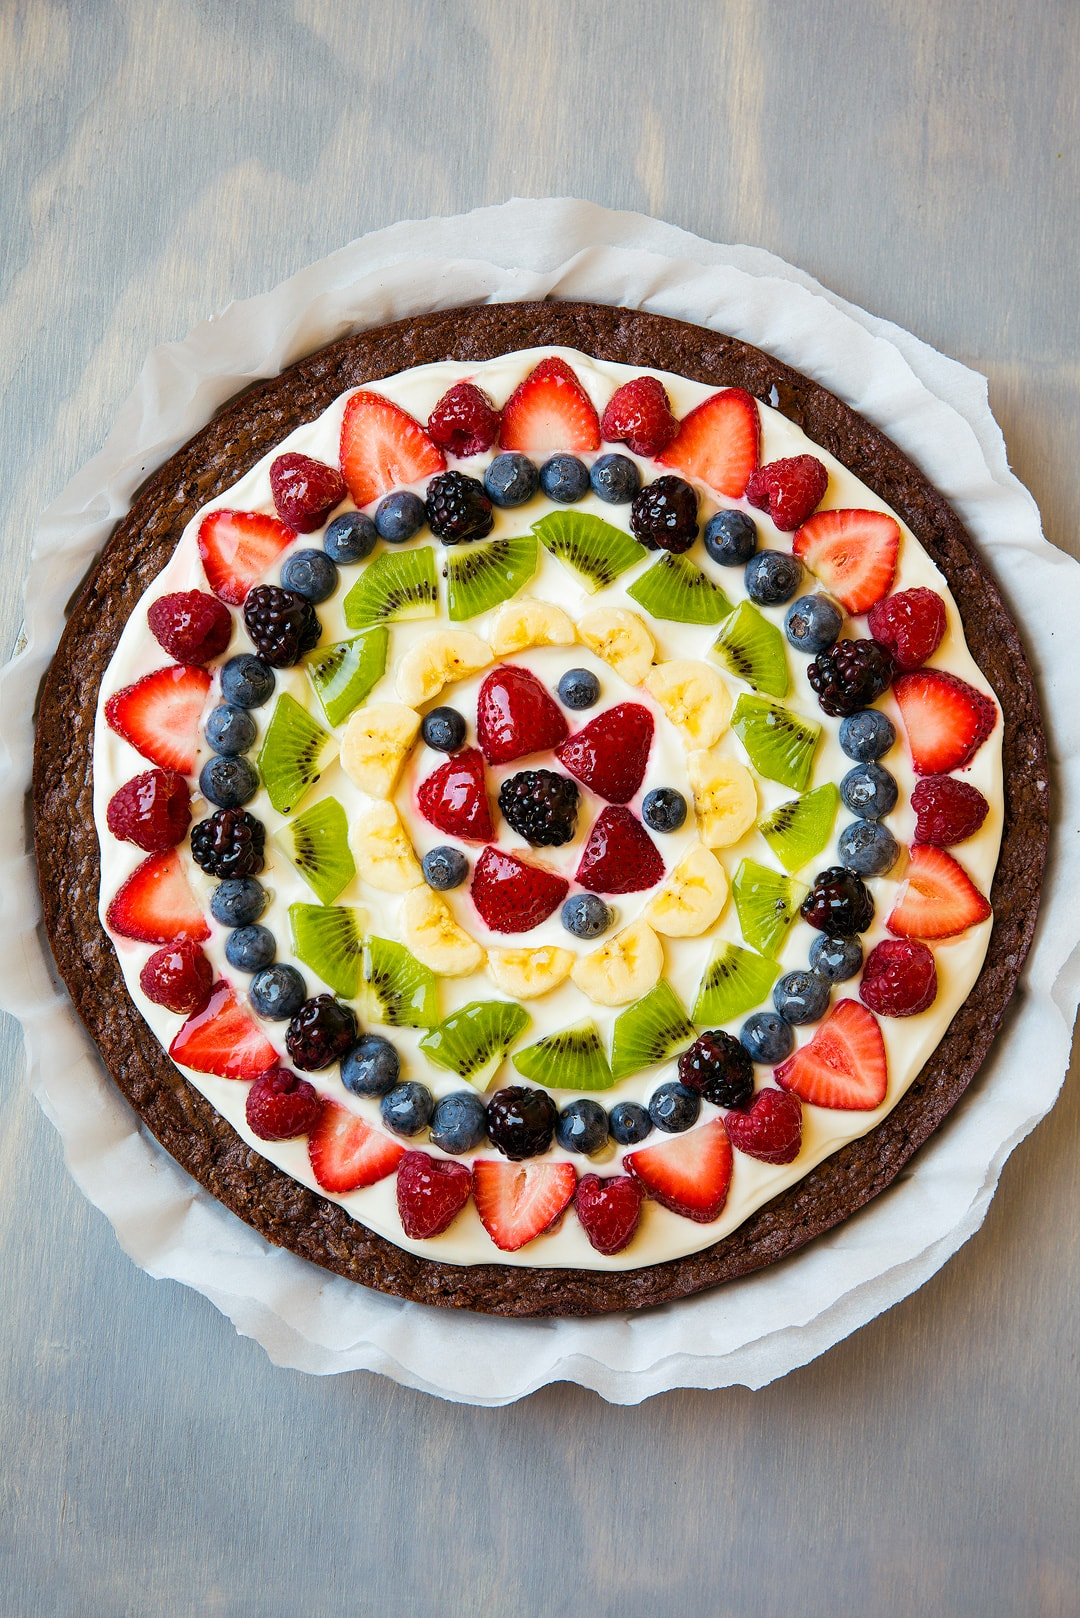 Brownie Fruit Pizza topped with cream cheese frosting, strawberries, raspberries, blueberries, blackberries, kiwi, and bananas.